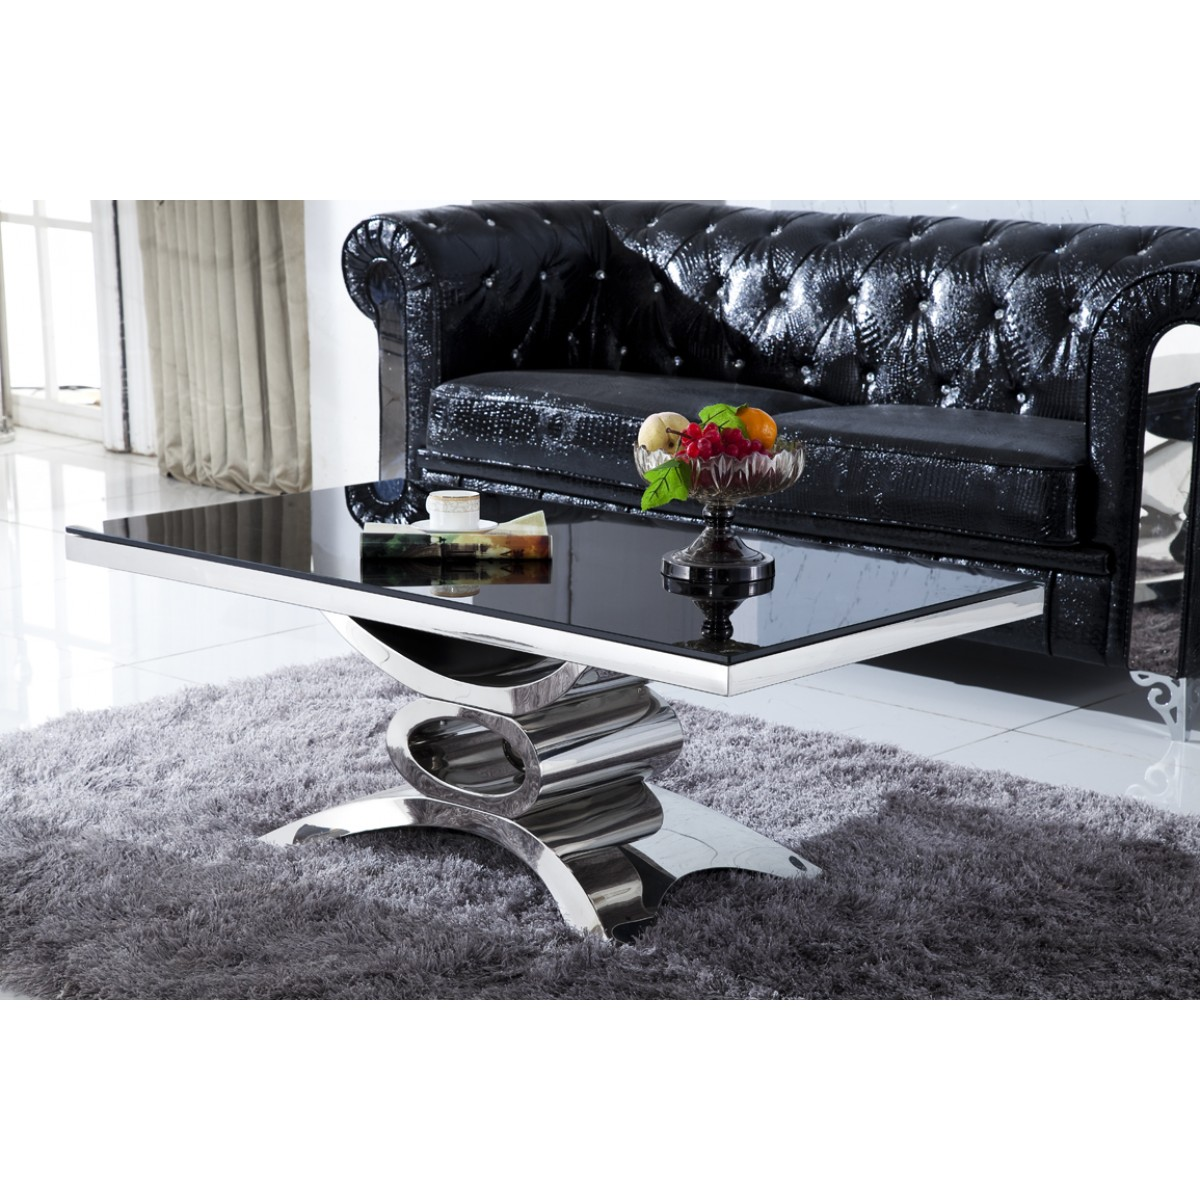 table basse en inox et verre marbre jaipur tables basses. Black Bedroom Furniture Sets. Home Design Ideas